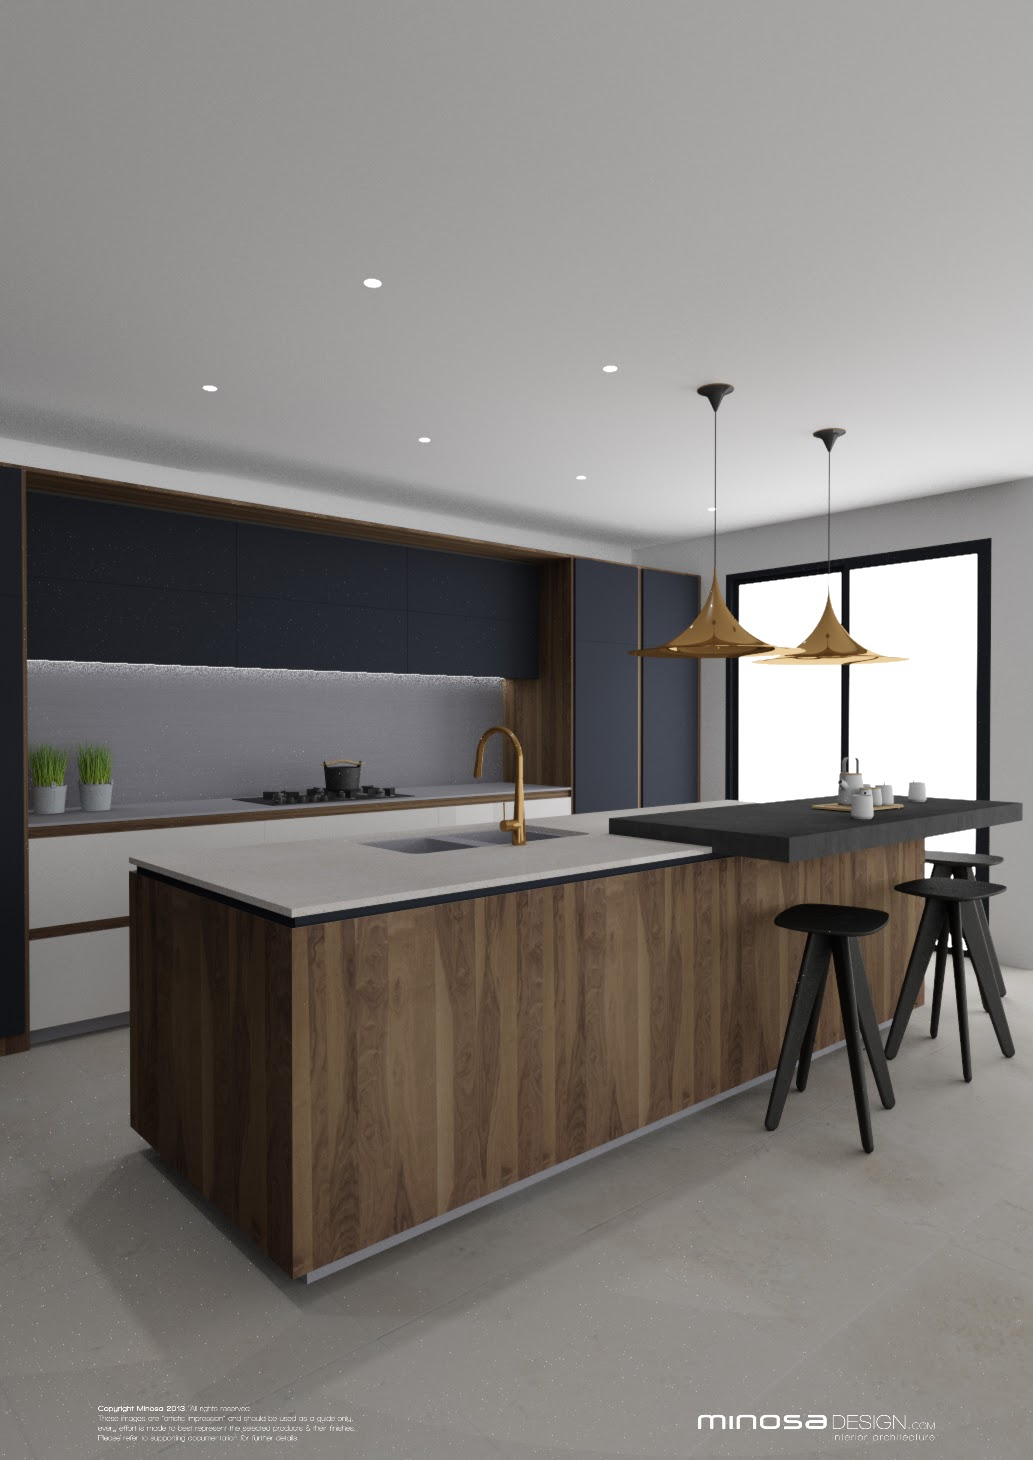 Minosa Striking Kitchen Design With Rich Wood Copper